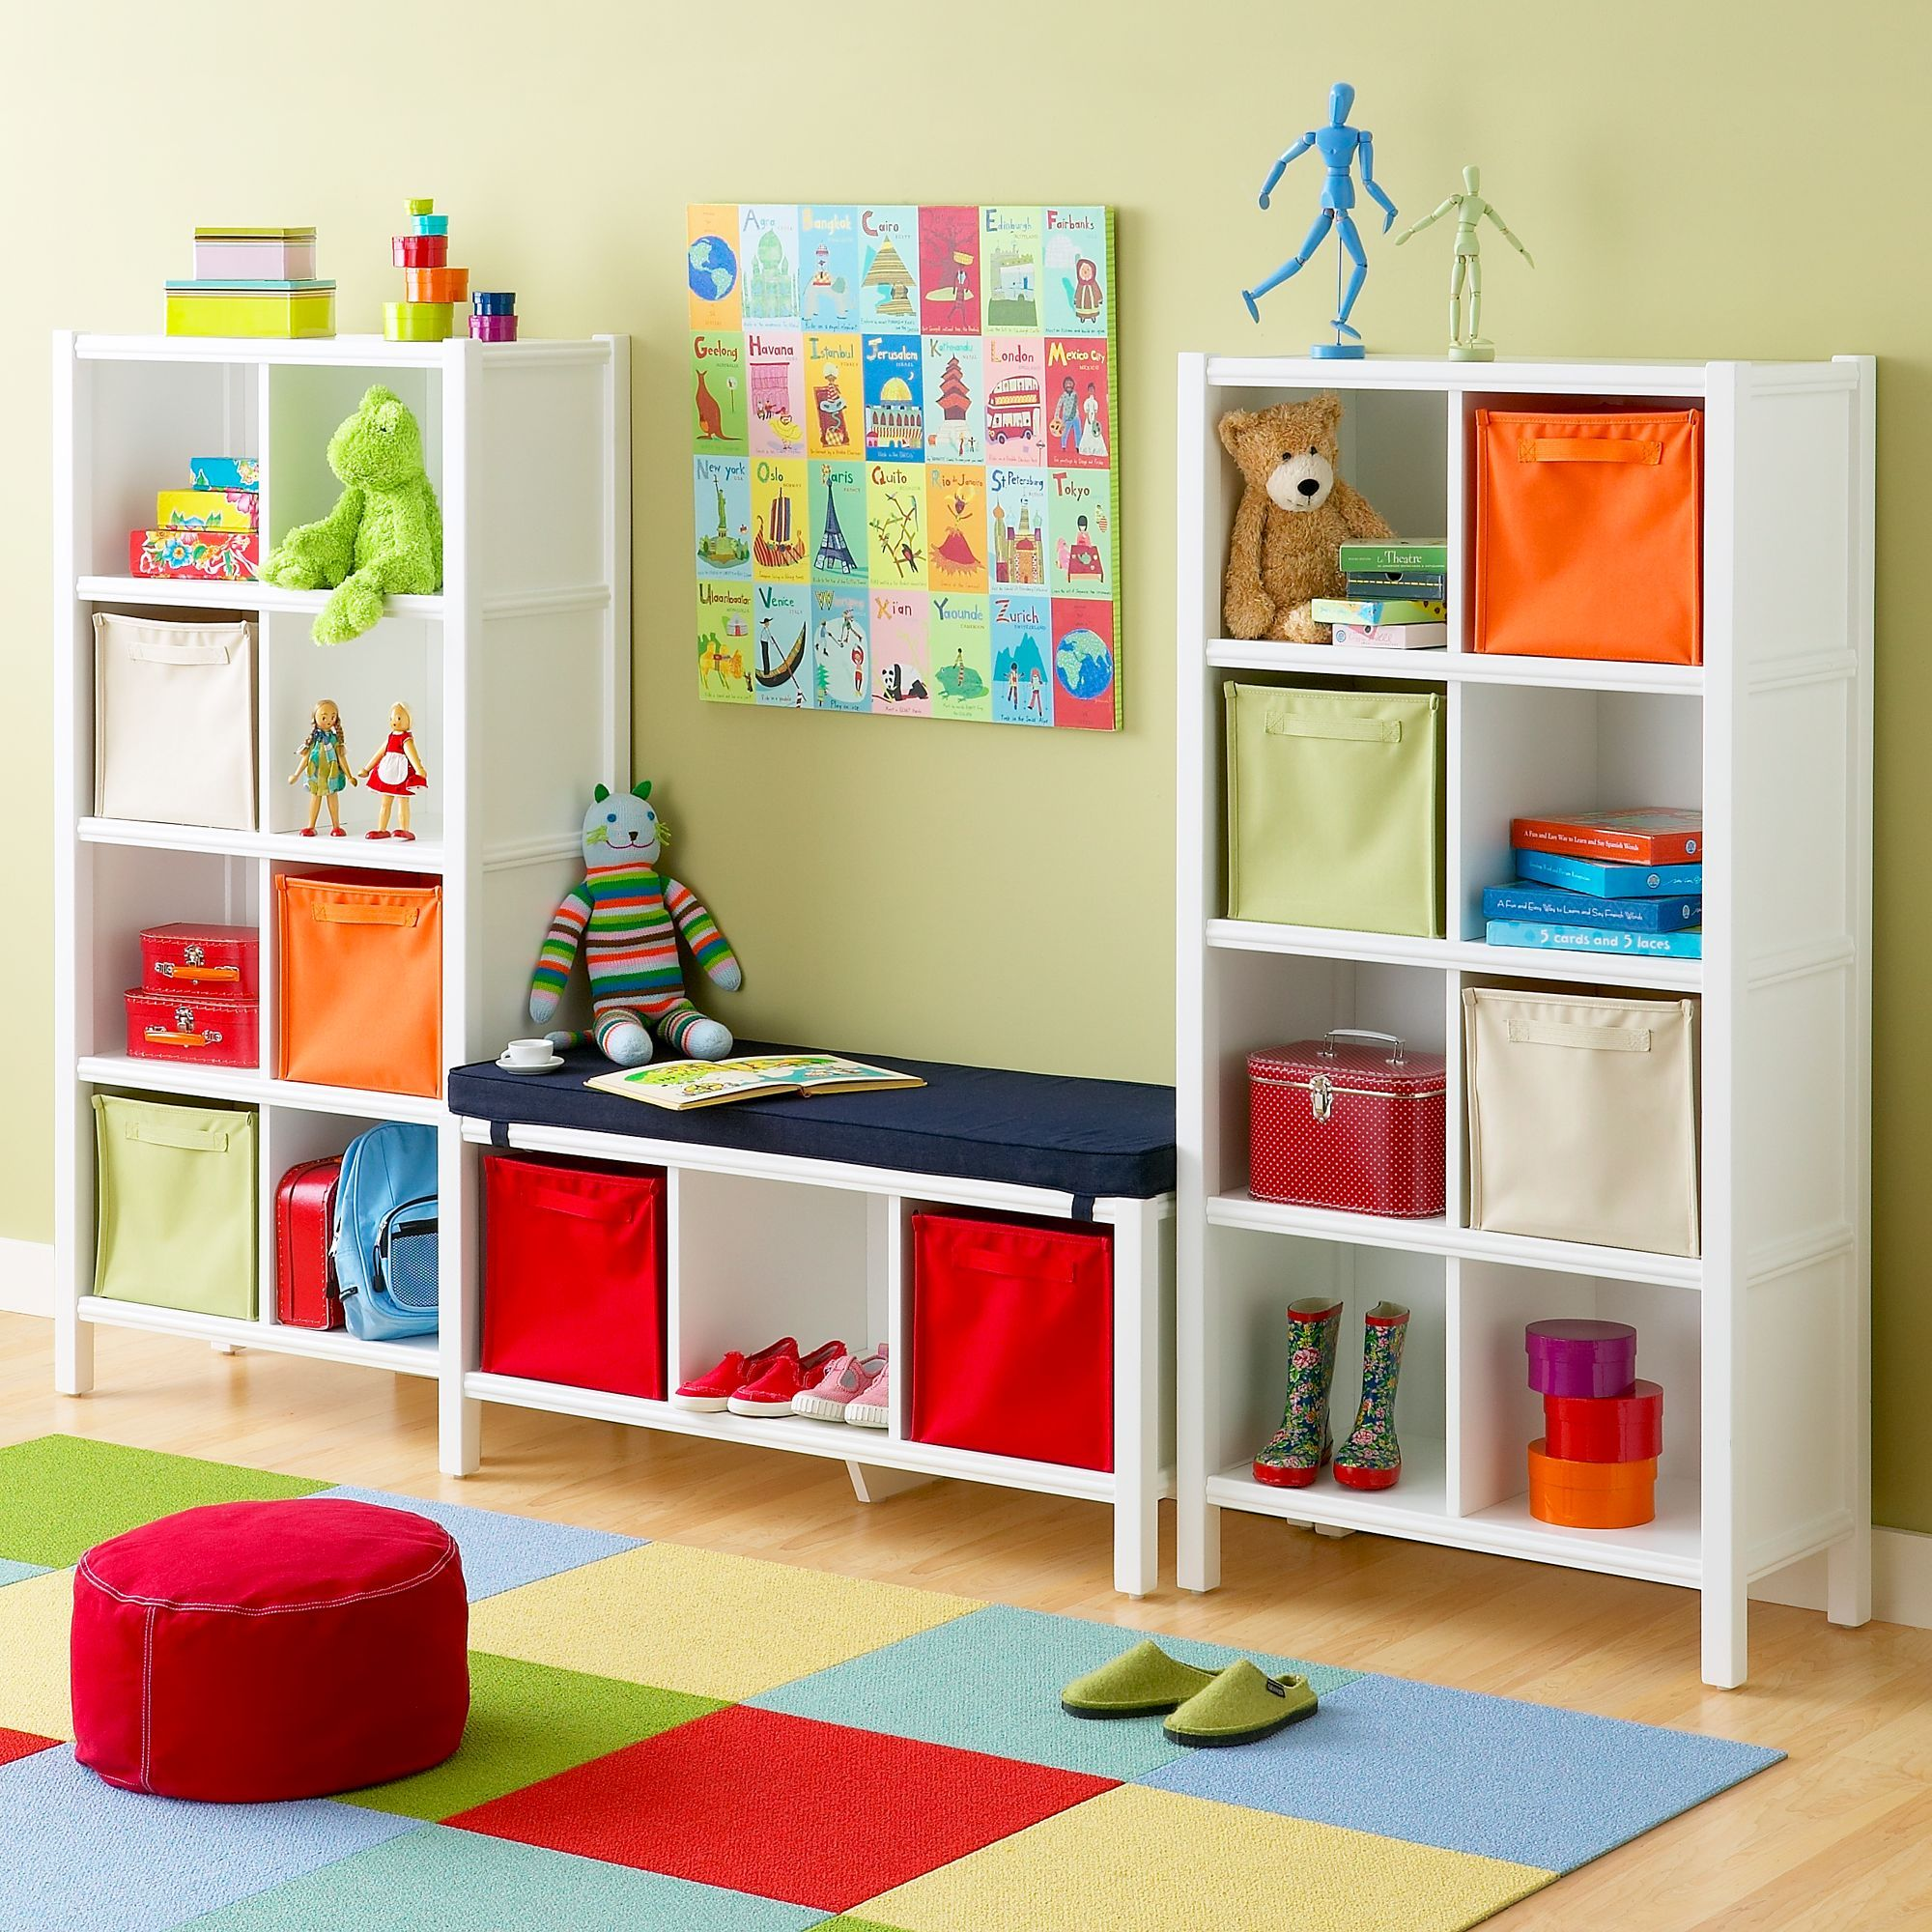 kids room children activities crafts projects pinterest rh pinterest com Art Clip Room Storage Room Storage Ideas